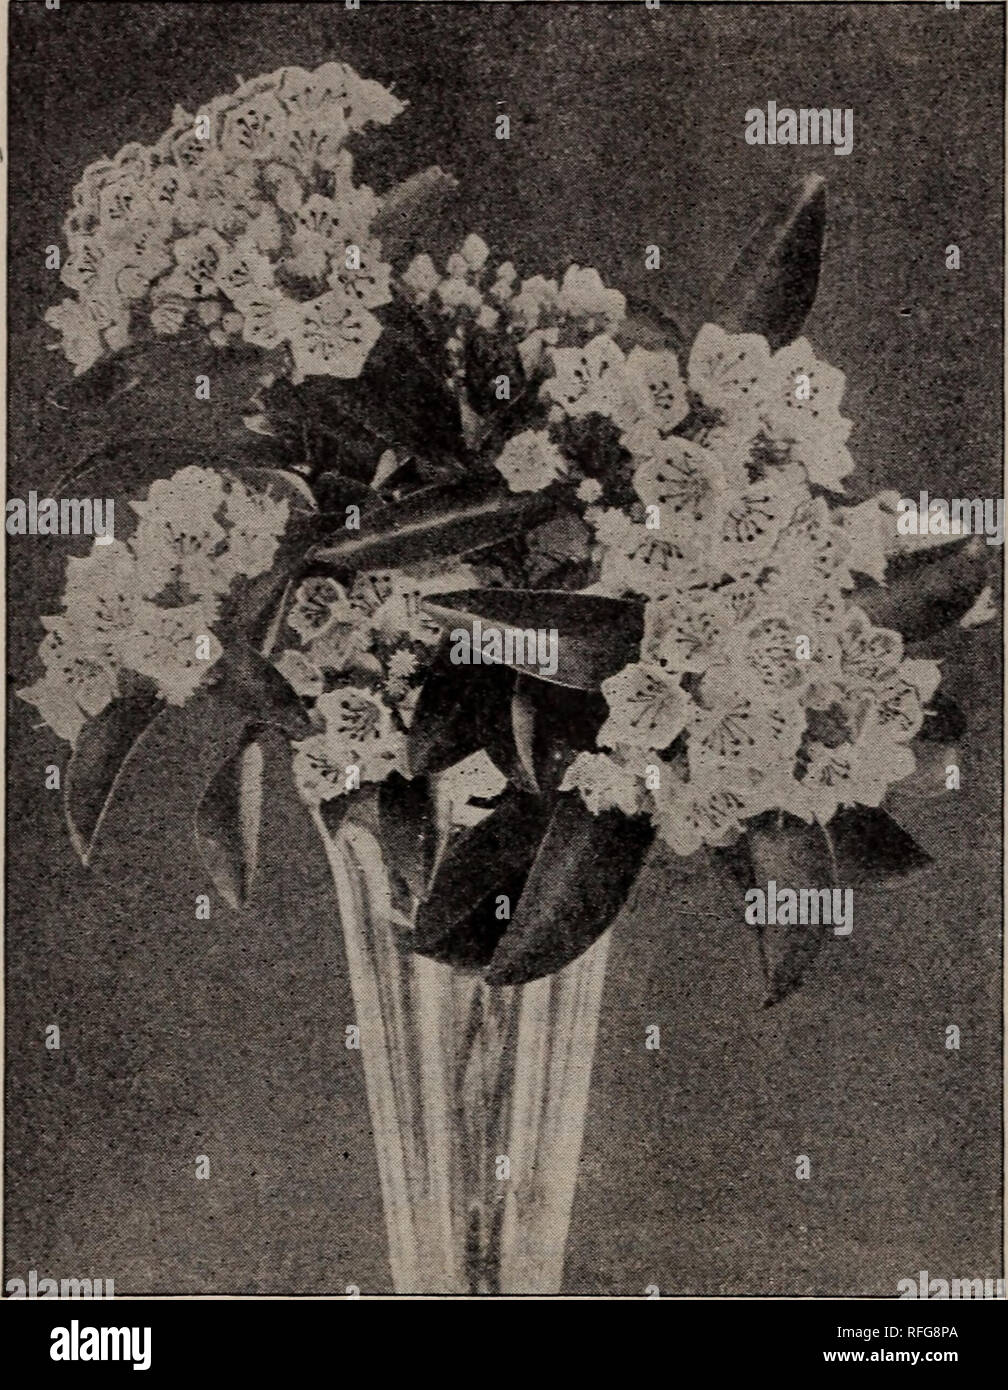 . Descriptive catalogue : trees, shrubs and plants. Nursery stock, New York (State), New York, Catalogs; Trees, Seedlings, Catalogs; Shrubs, Catalogs; Flowers, Catalogs; Fruit, Catalogs. 36 KEENE & FOULK, NURSERYMEN. Kalmia latifolia. Euonymus Japonicum argenteus. A variety with variegated foliage, to be treated like the preceding one. 50 cts. E. radicans. Creeping Euonymus. (4 to 6 ft.) A glossy, dark-leaved vine, or it will form a spreading shrub where it cannot climb. Valuable for covering wood, to which it clings. An invalu- able plant for covering bare spots in borders. 25 cts. each,  Stock Photo